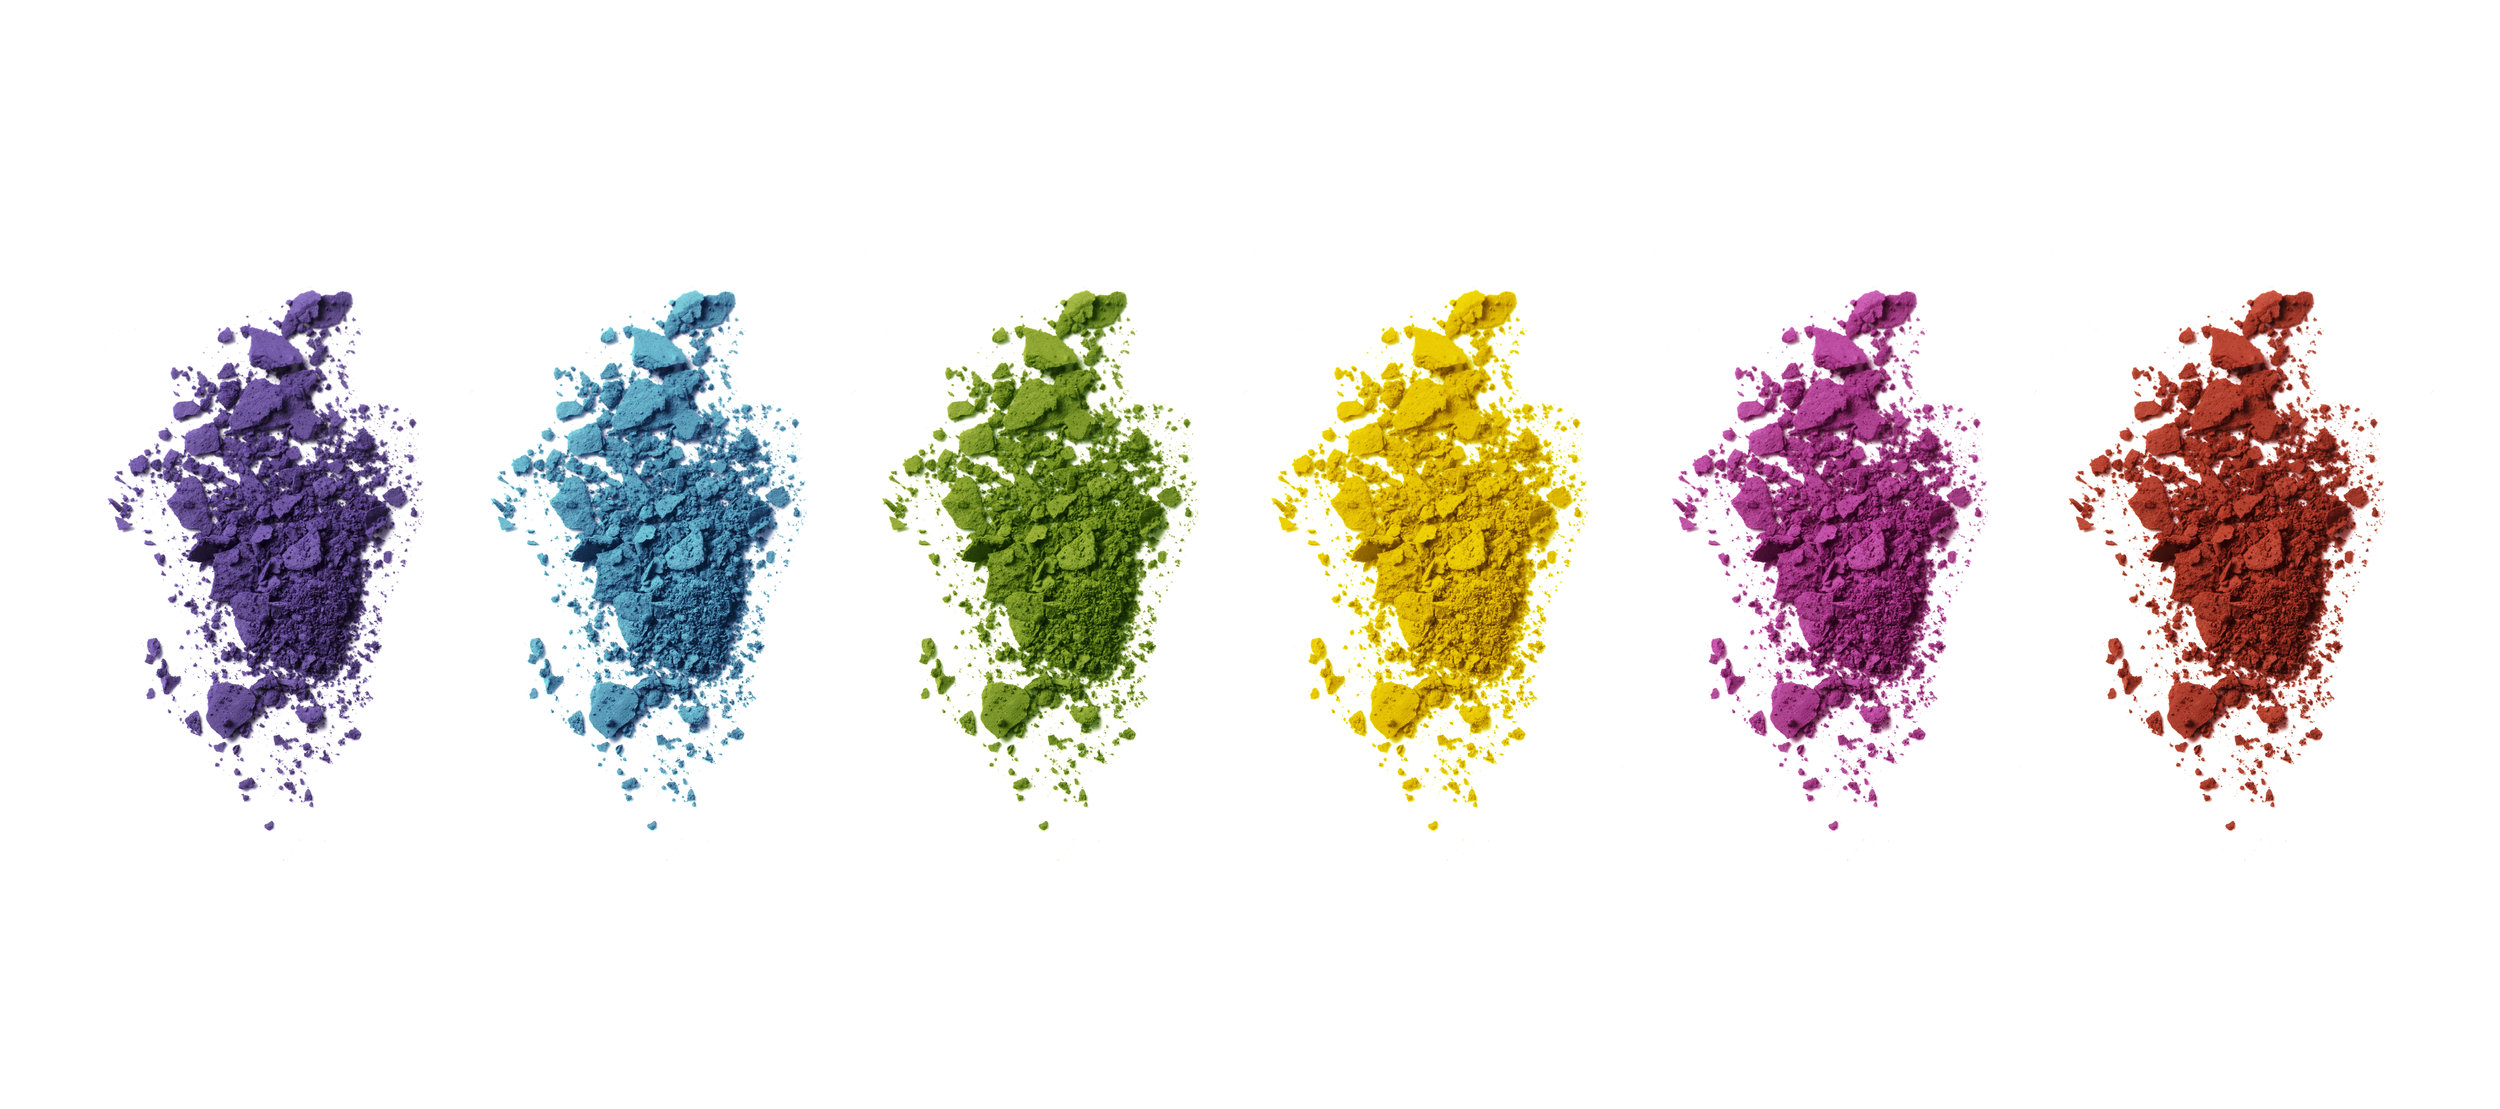 Flavonoids come in many different colors. These pigments have unique aromas and perform a specialized function in each and every plant.